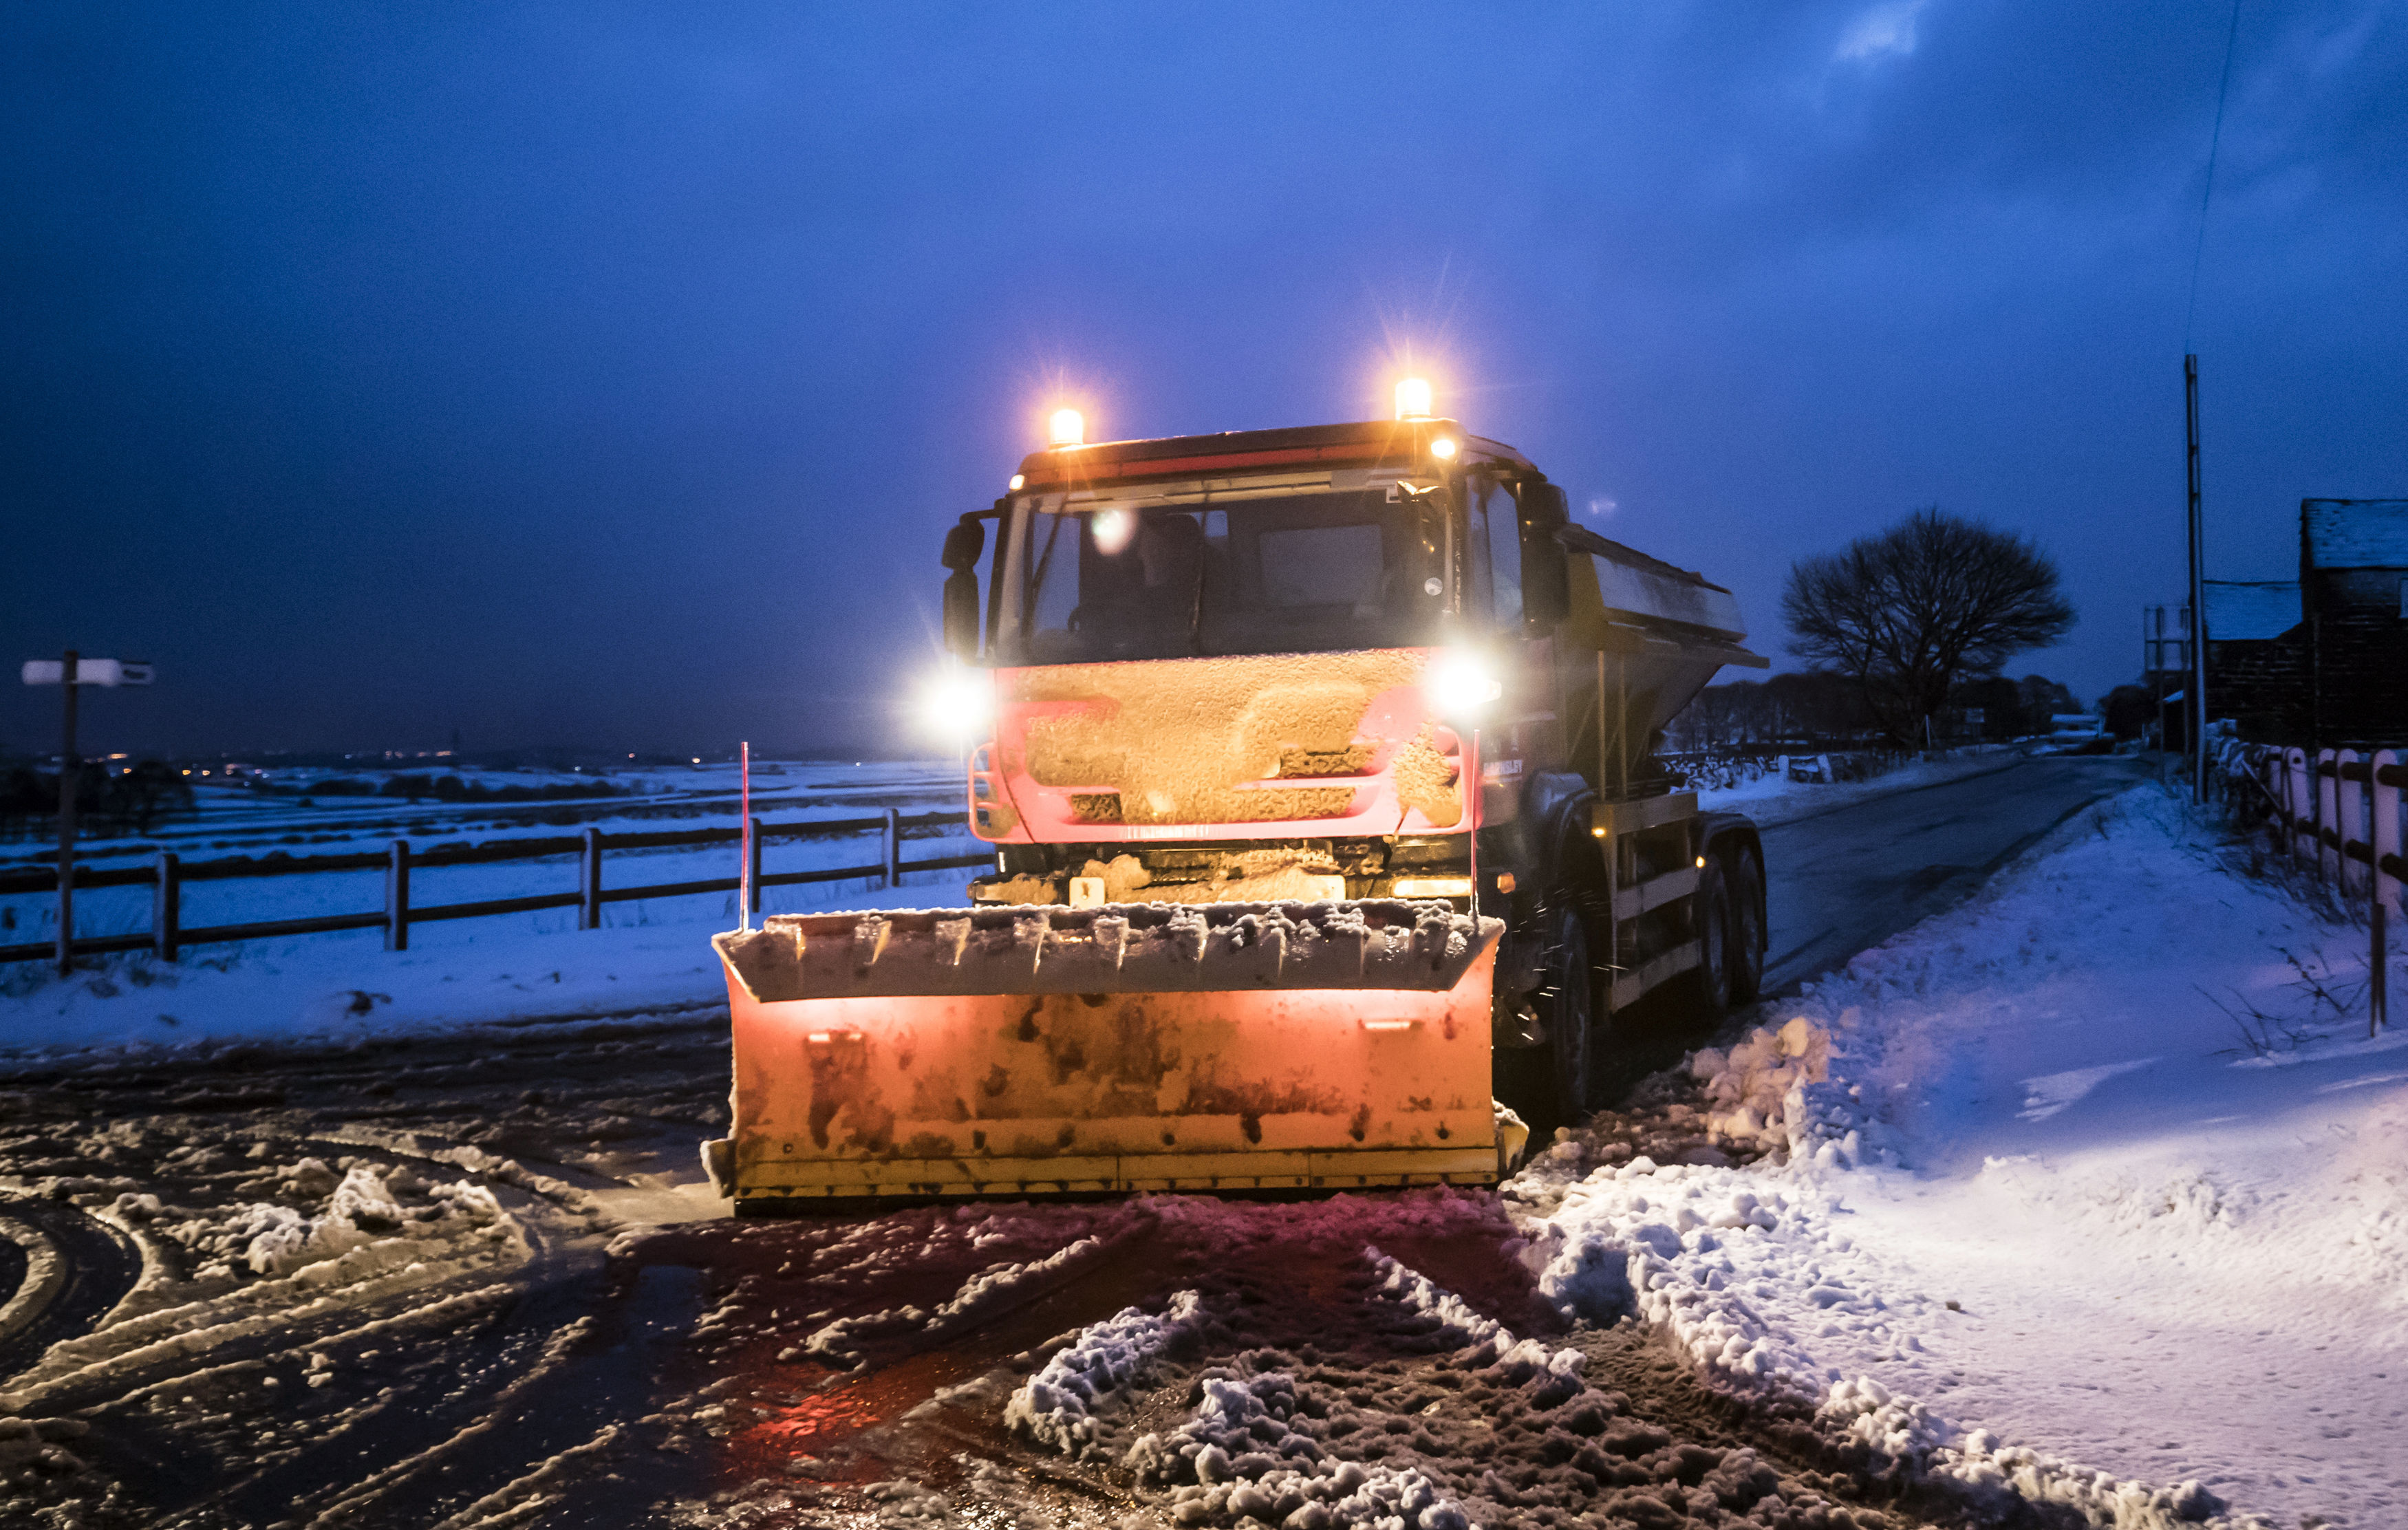 Met office issues new warning for snow and ice in North